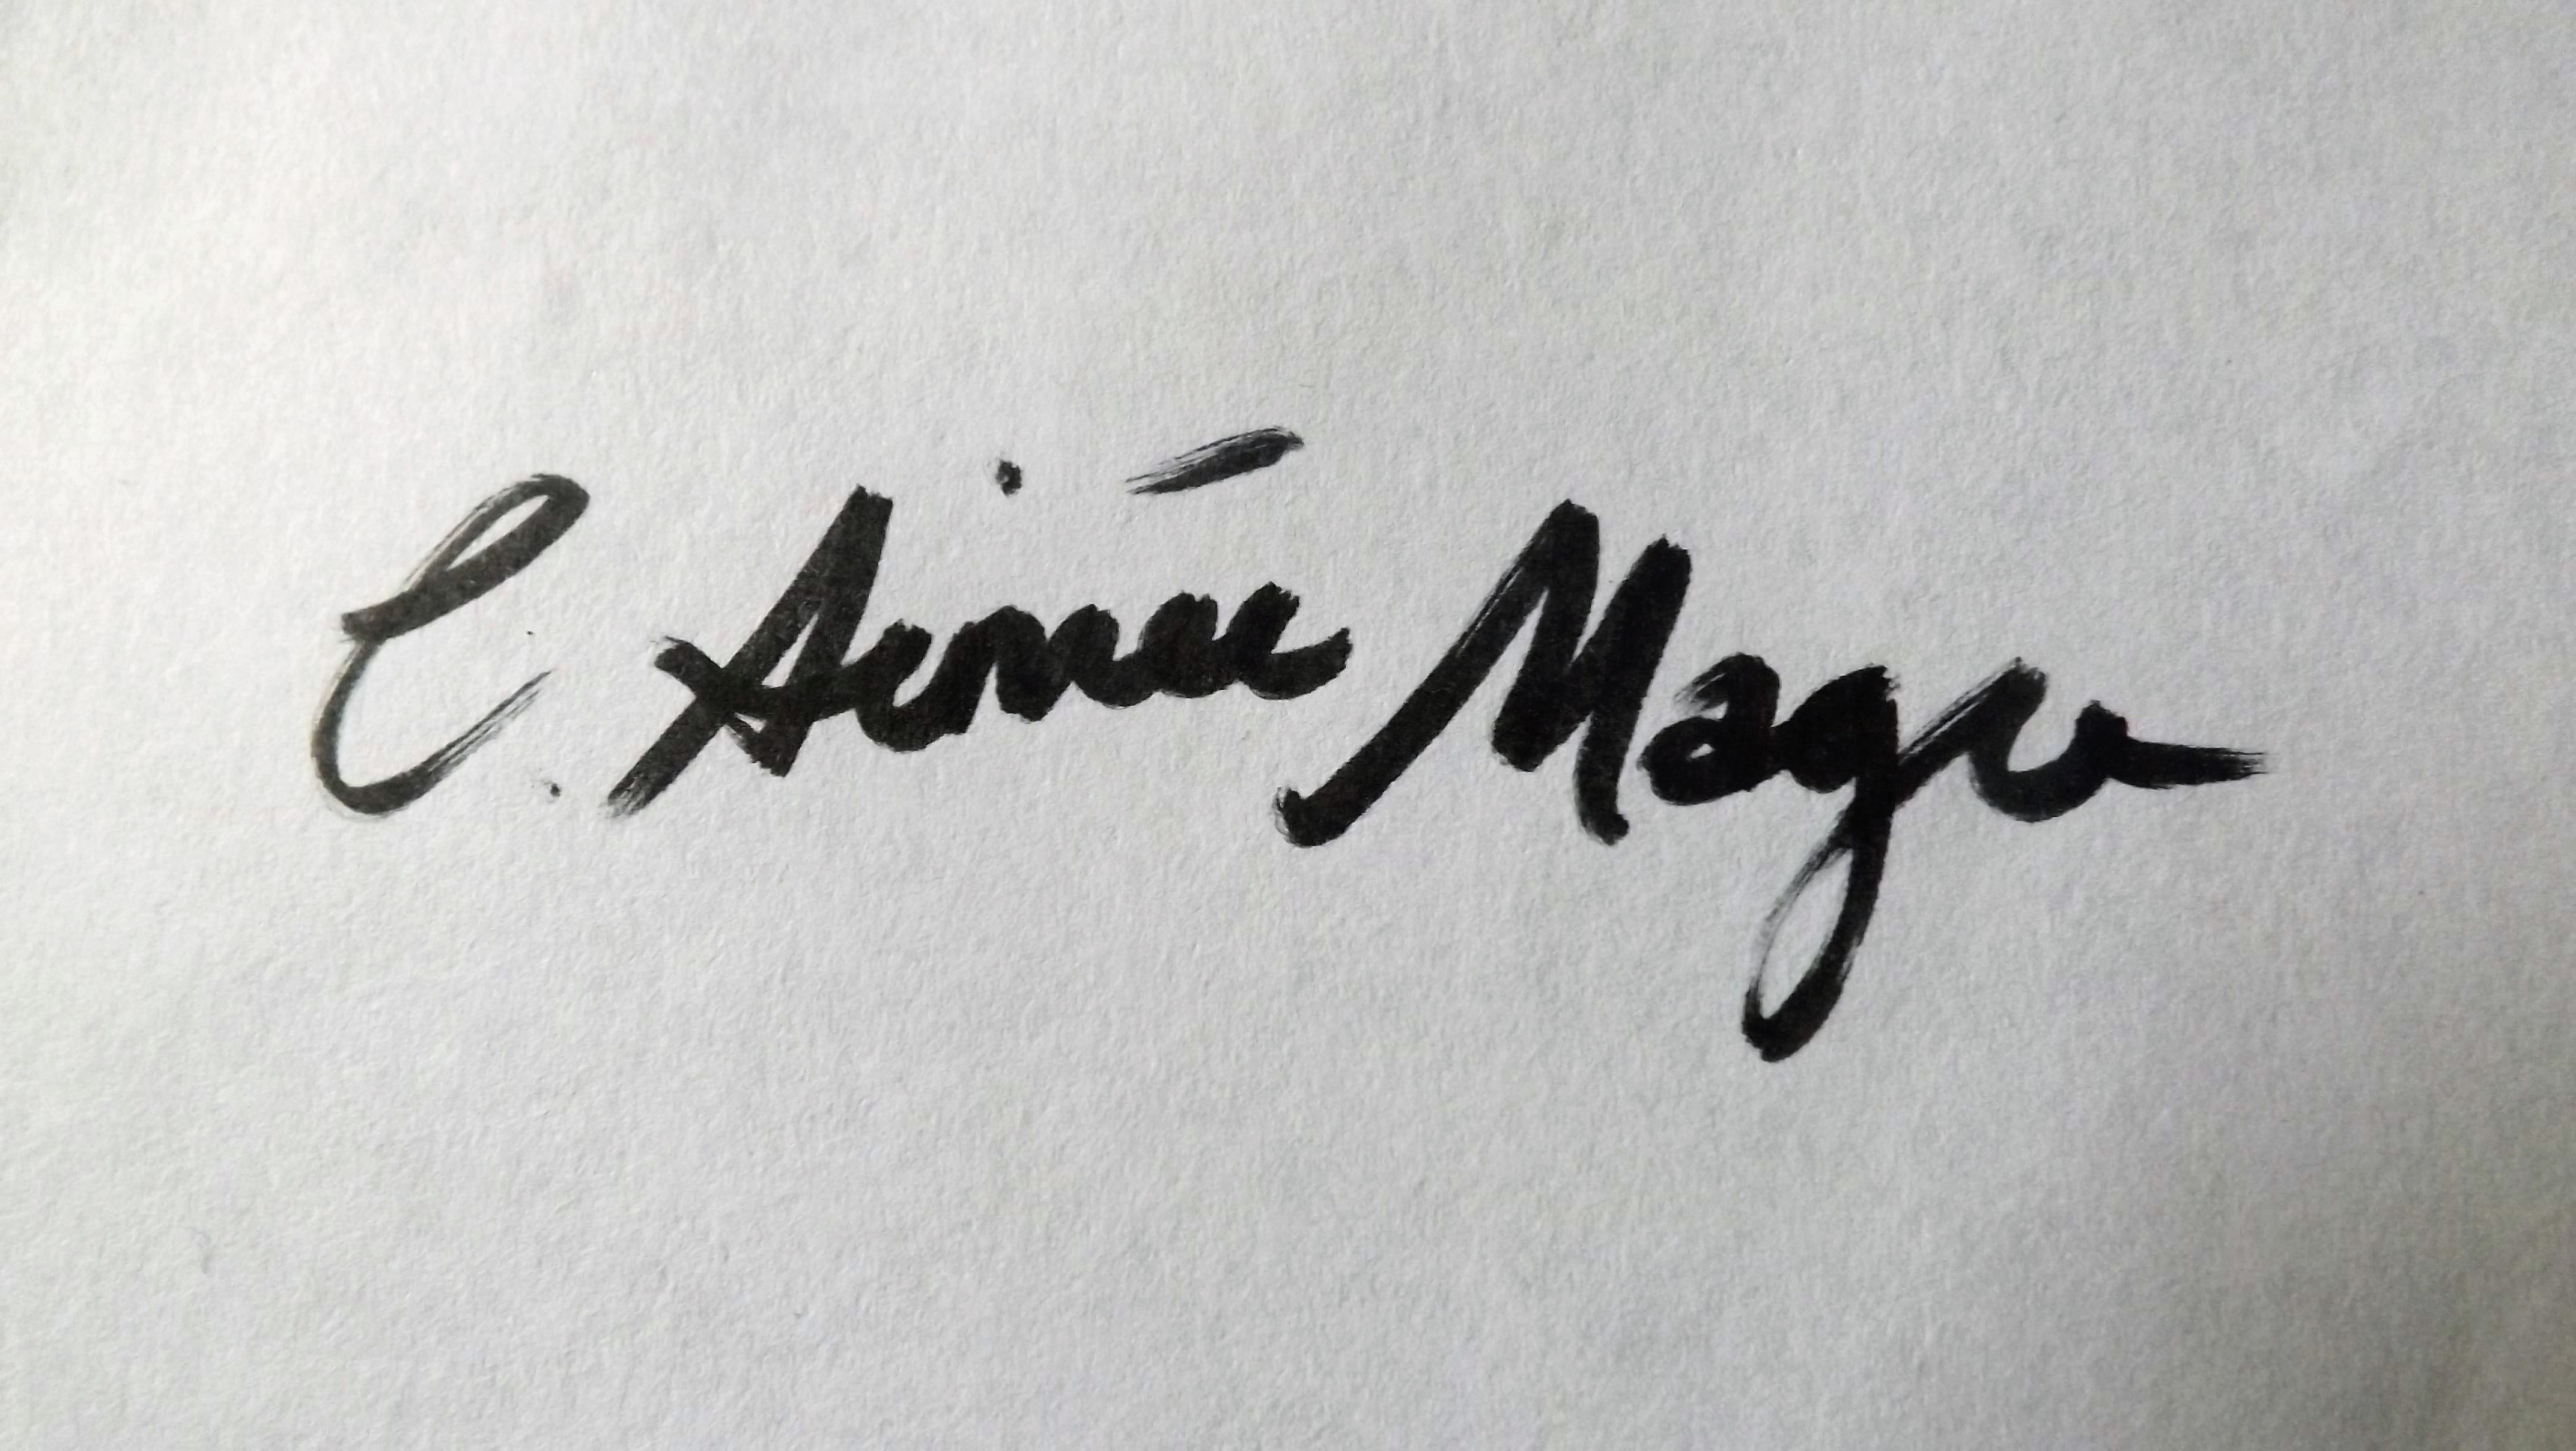 Catherine Aimee Magee's Signature